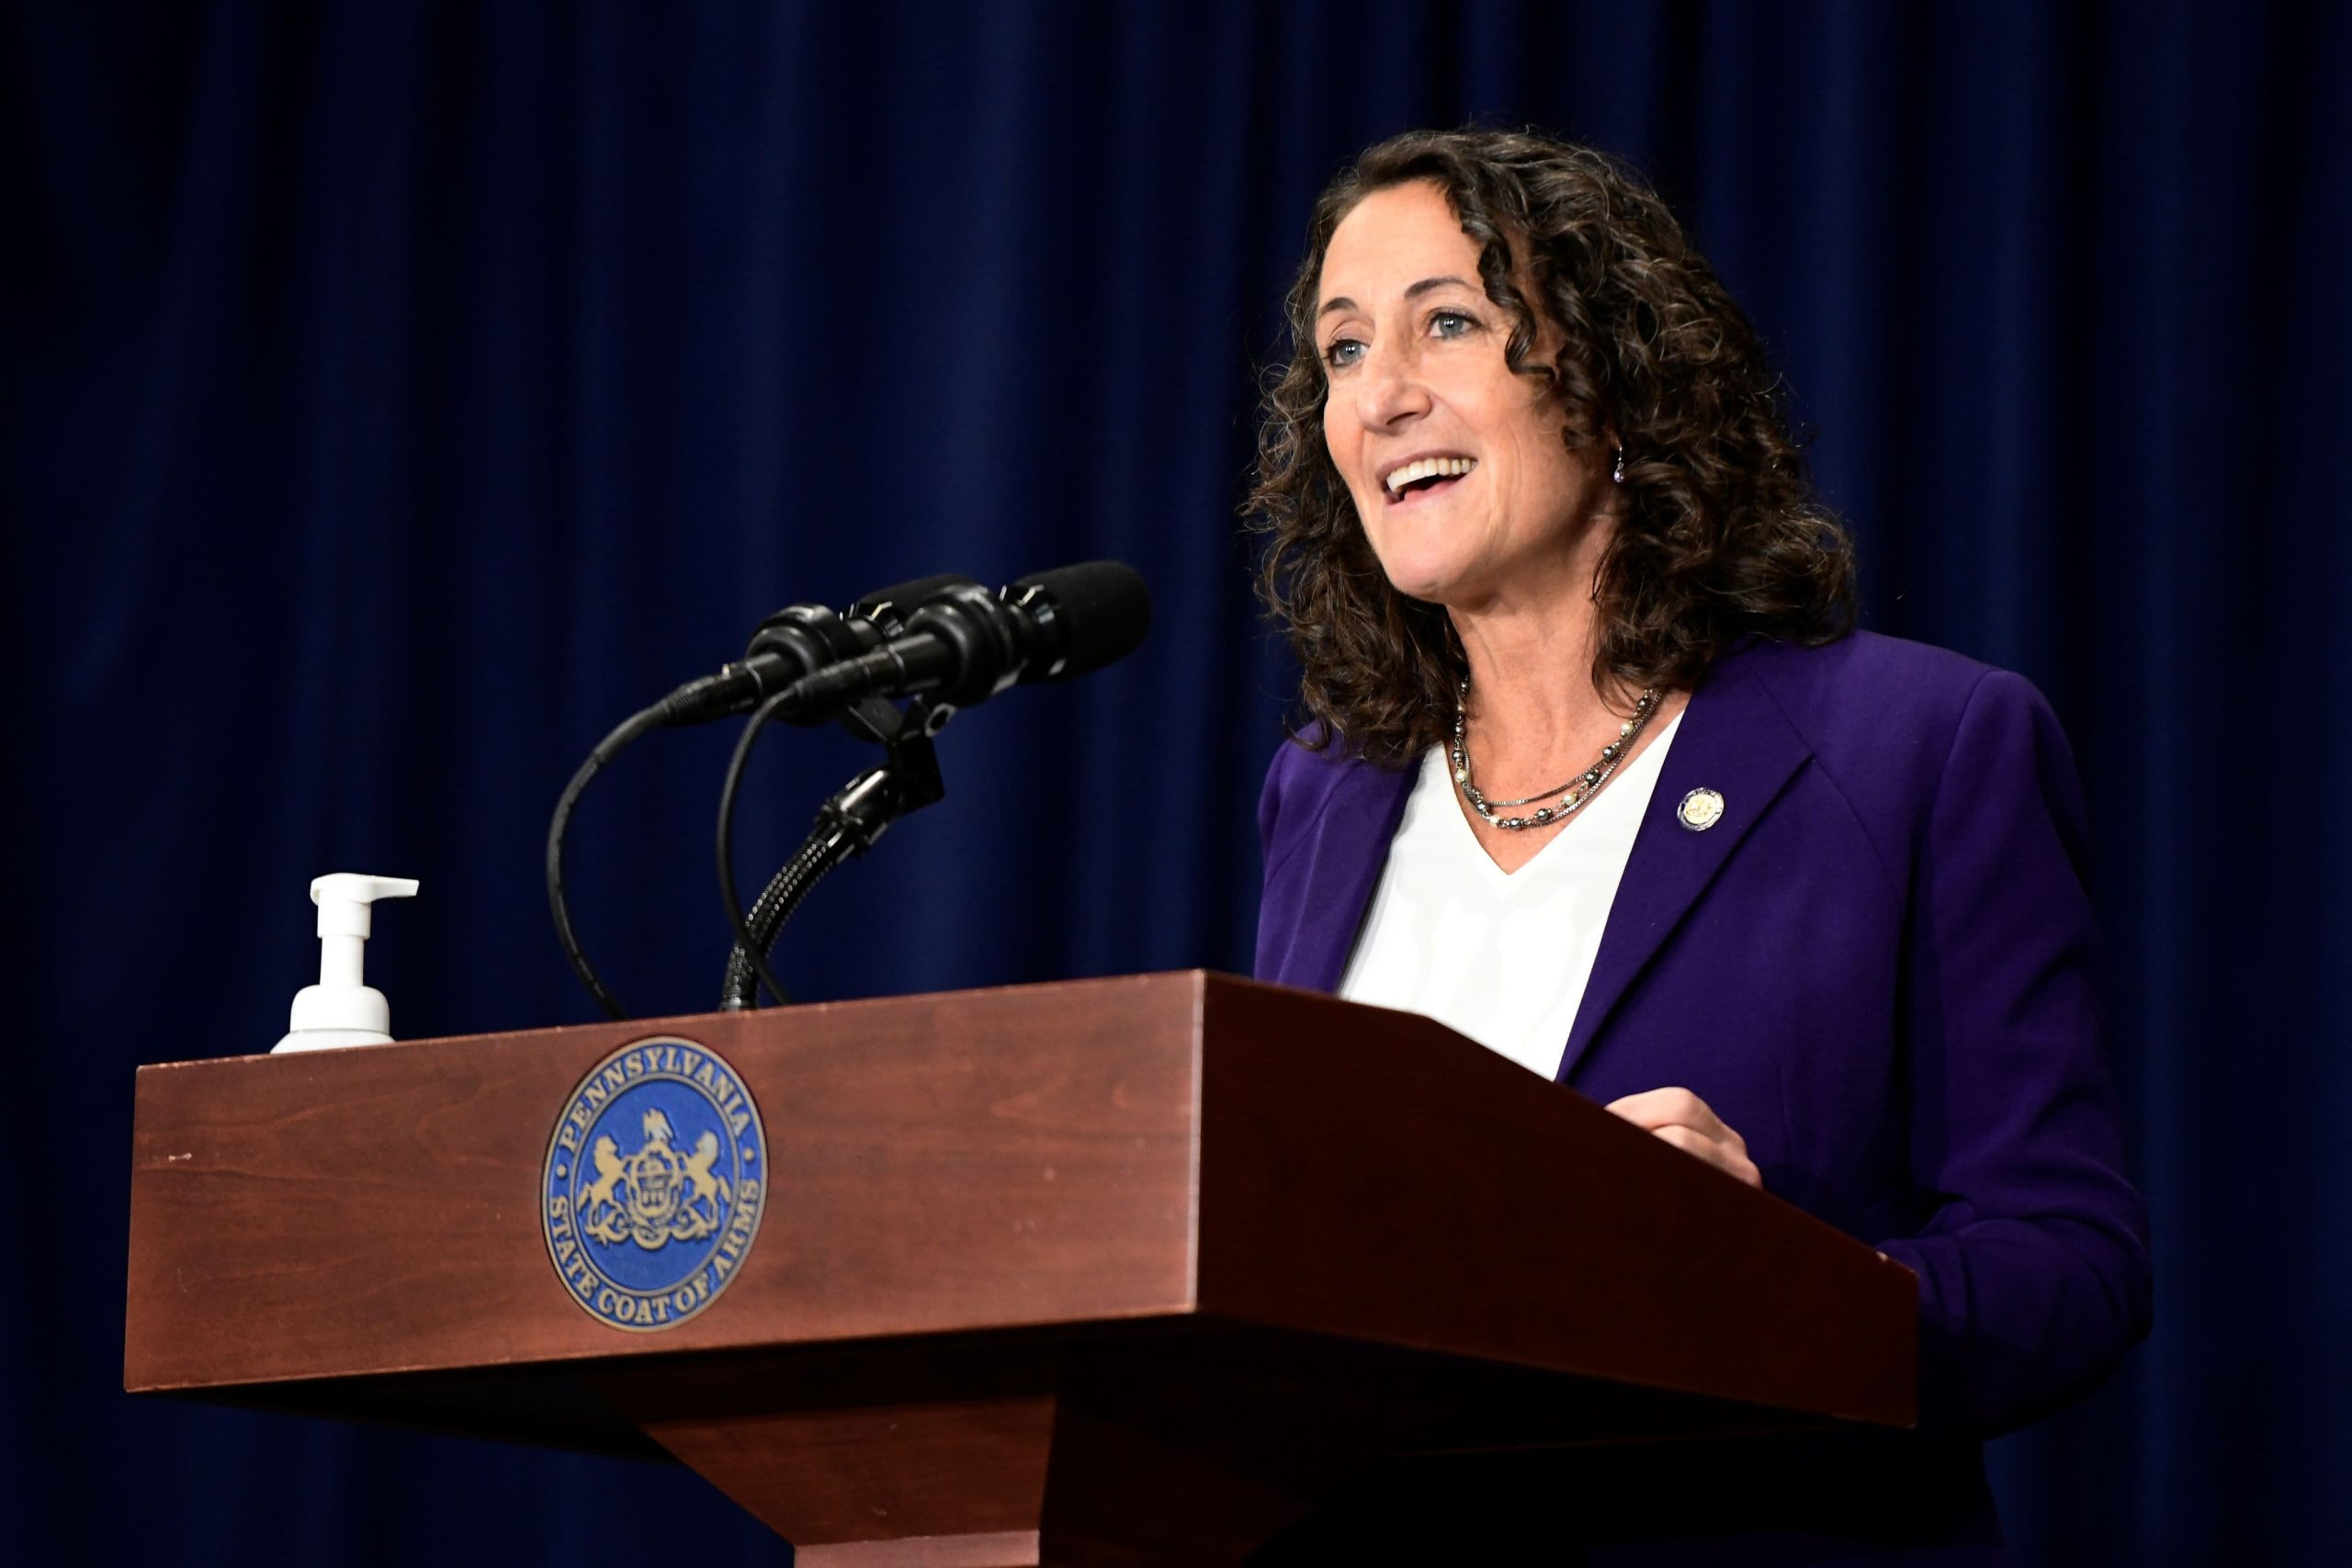 Pennsylvania Secretary of State Boockvar to step down after failure to advertise constitutional amendment